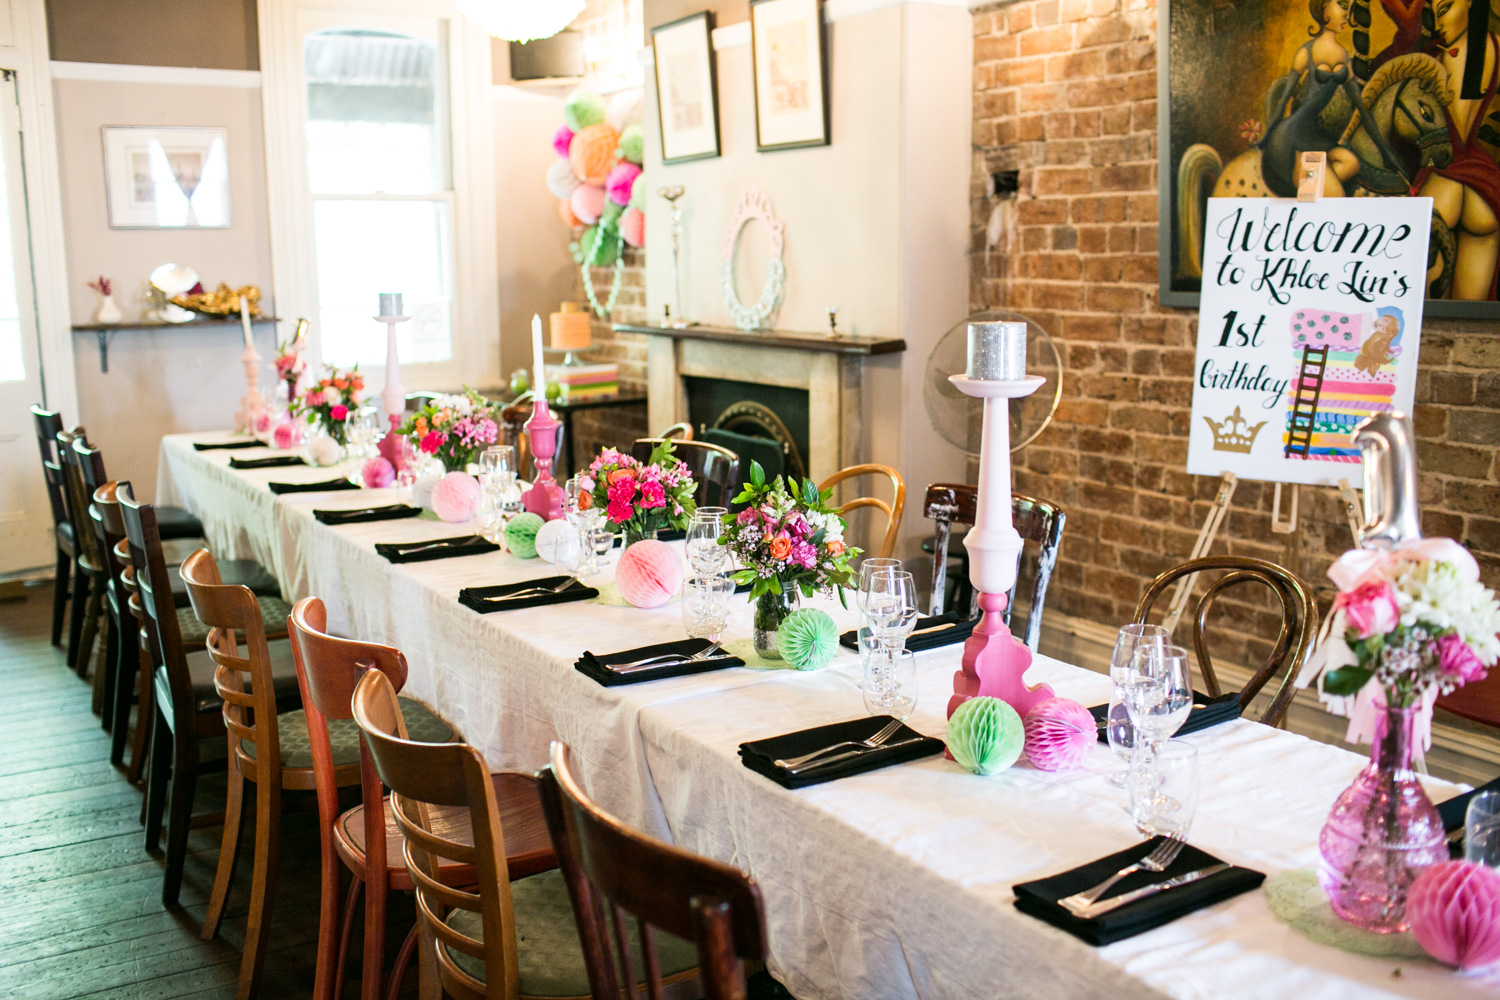 Khloe Lin's 1st Birthday Party {Event Styling}